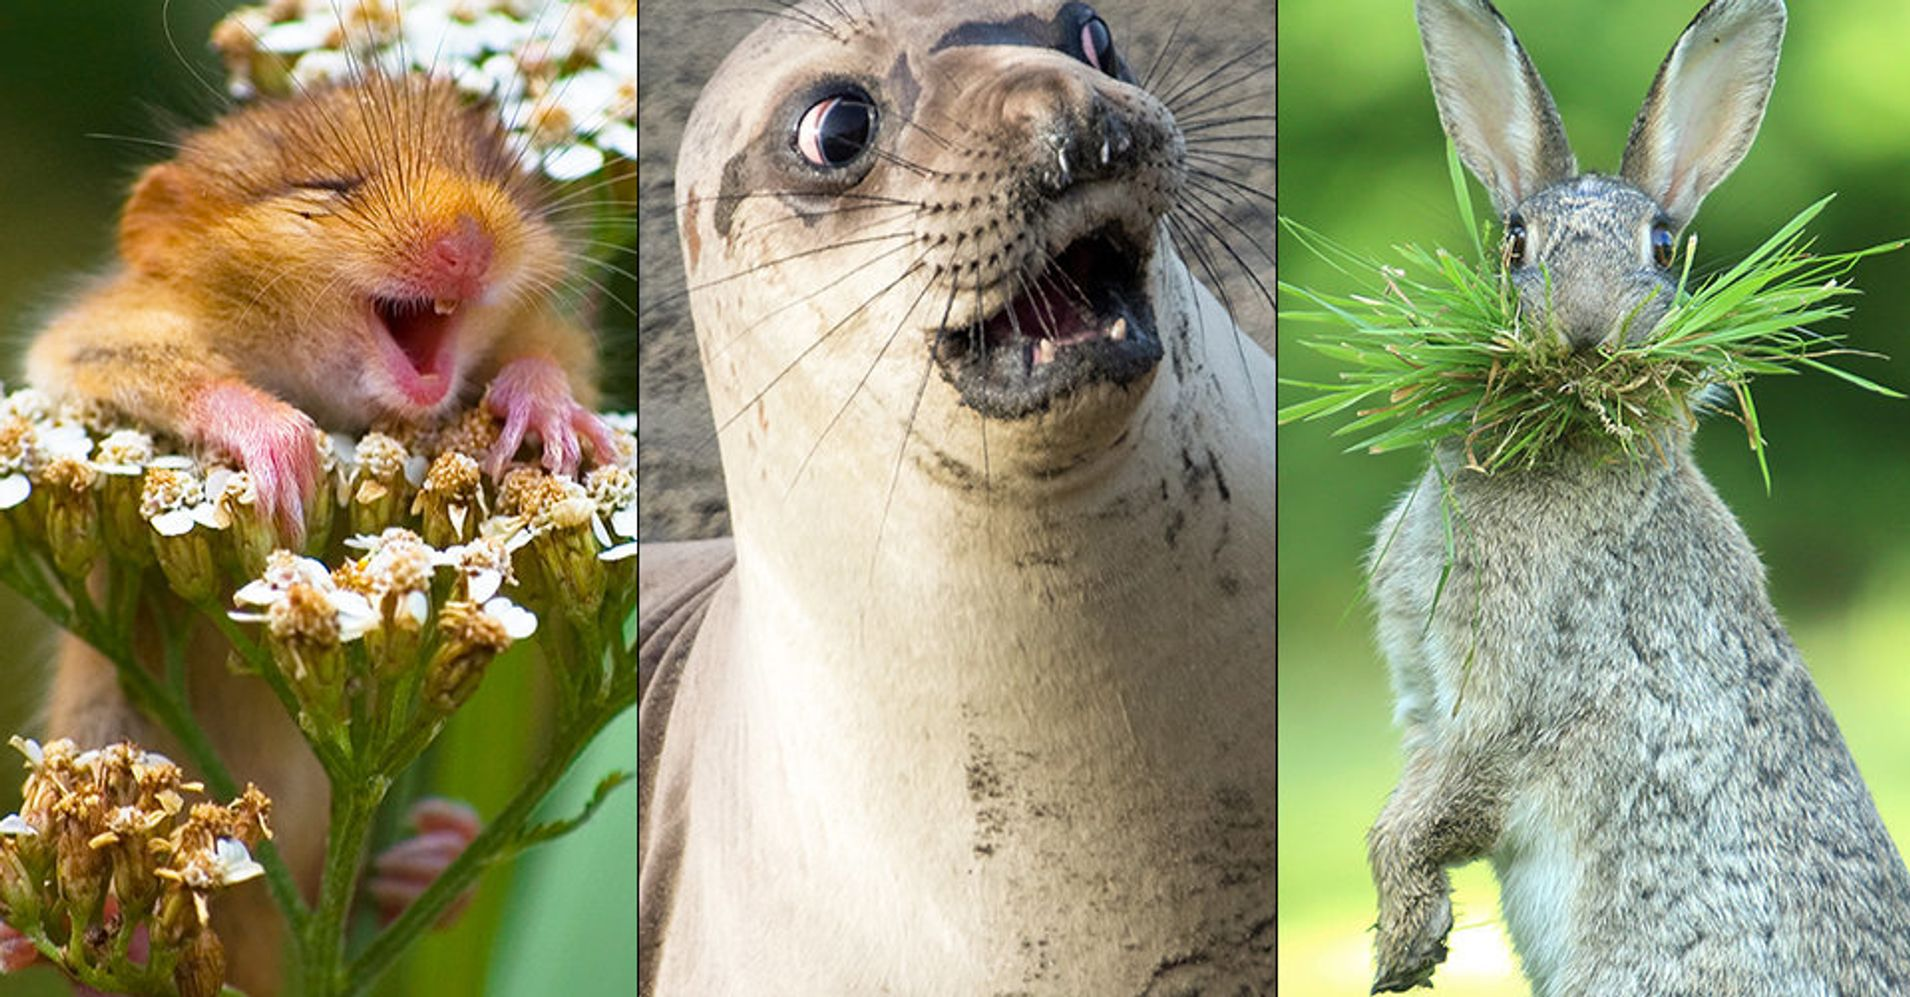 The Funniest Wildlife Photos Of 2017 Are Also Pretty Freakin' Adorable